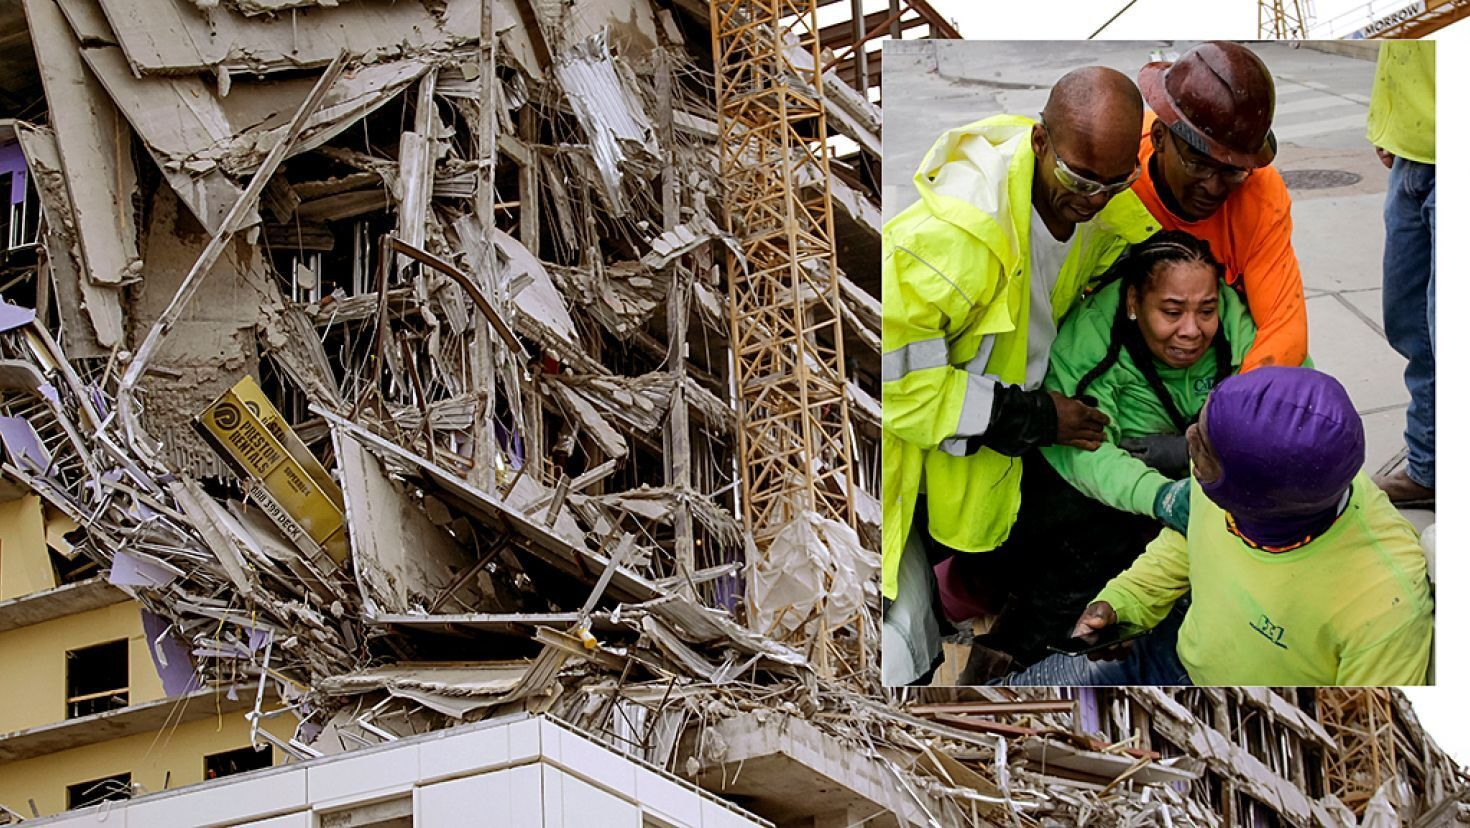 New Orleans Hard Rock Hotel Under Construction Collapses At Least